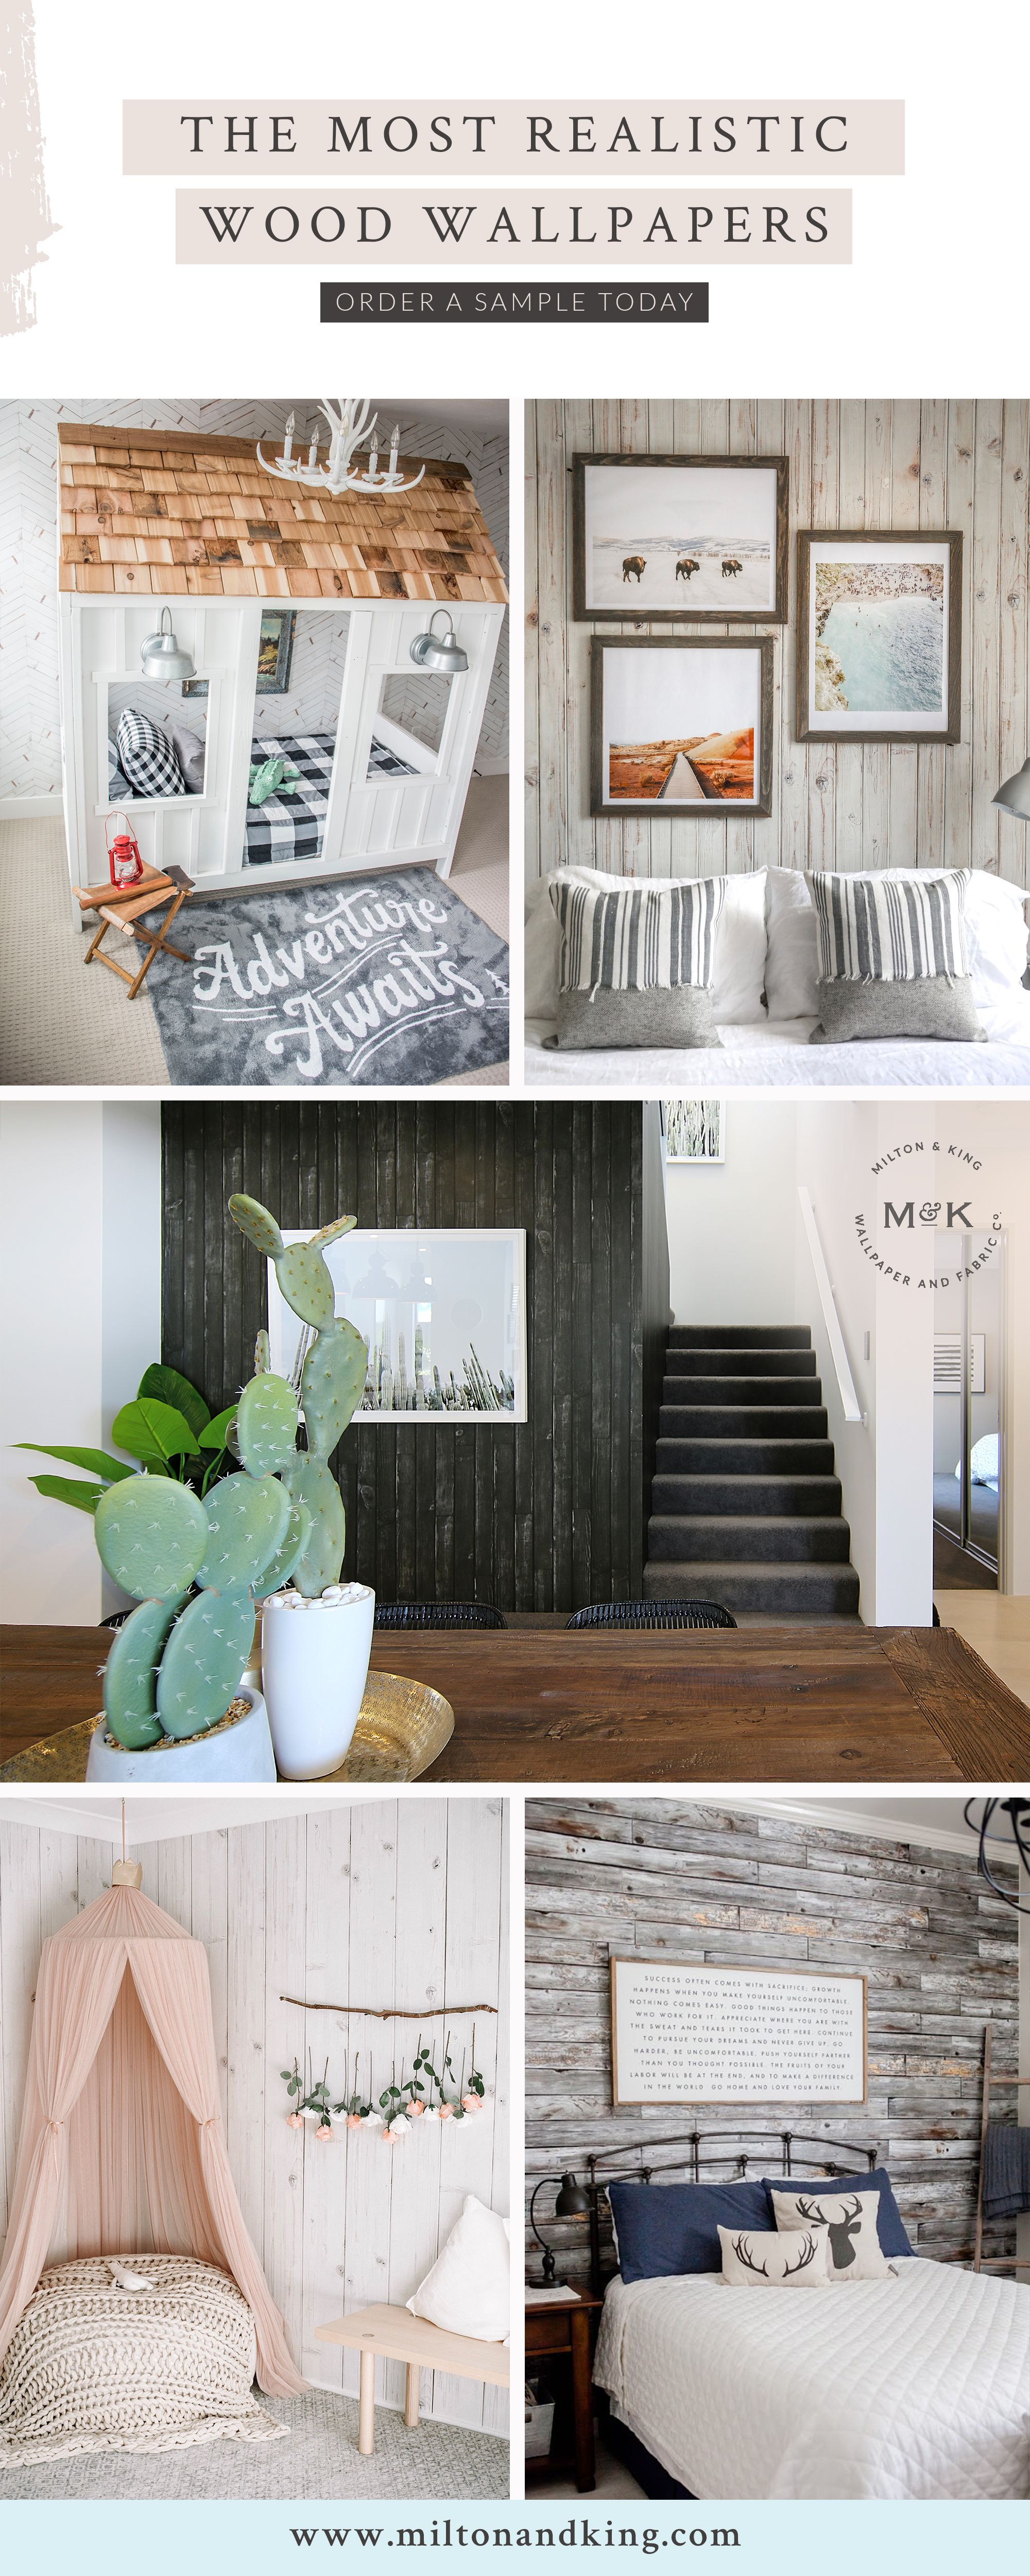 A Realistic Wood Wallpaper Can Add A Range Of Character